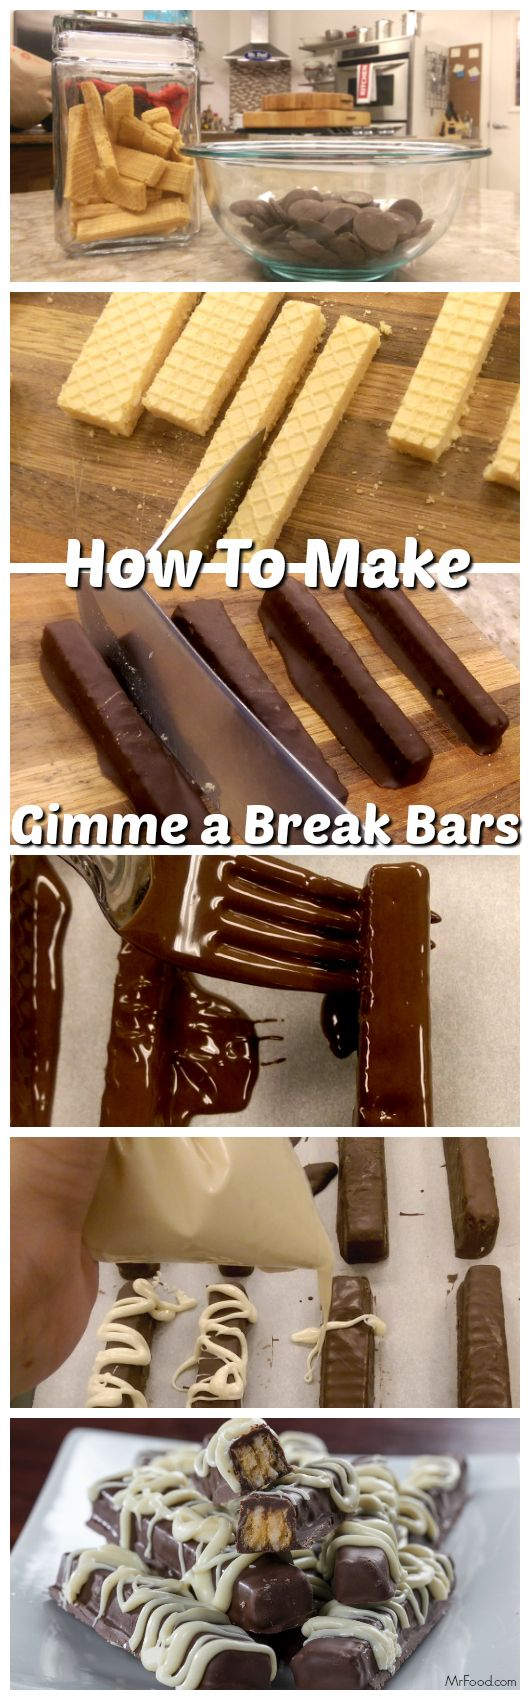 """With two ingredients you can make this copycat version of one of your favorite candy bars! We're going to show you how to make our """"Gimme a Break Bars,"""" step-by-step!"""